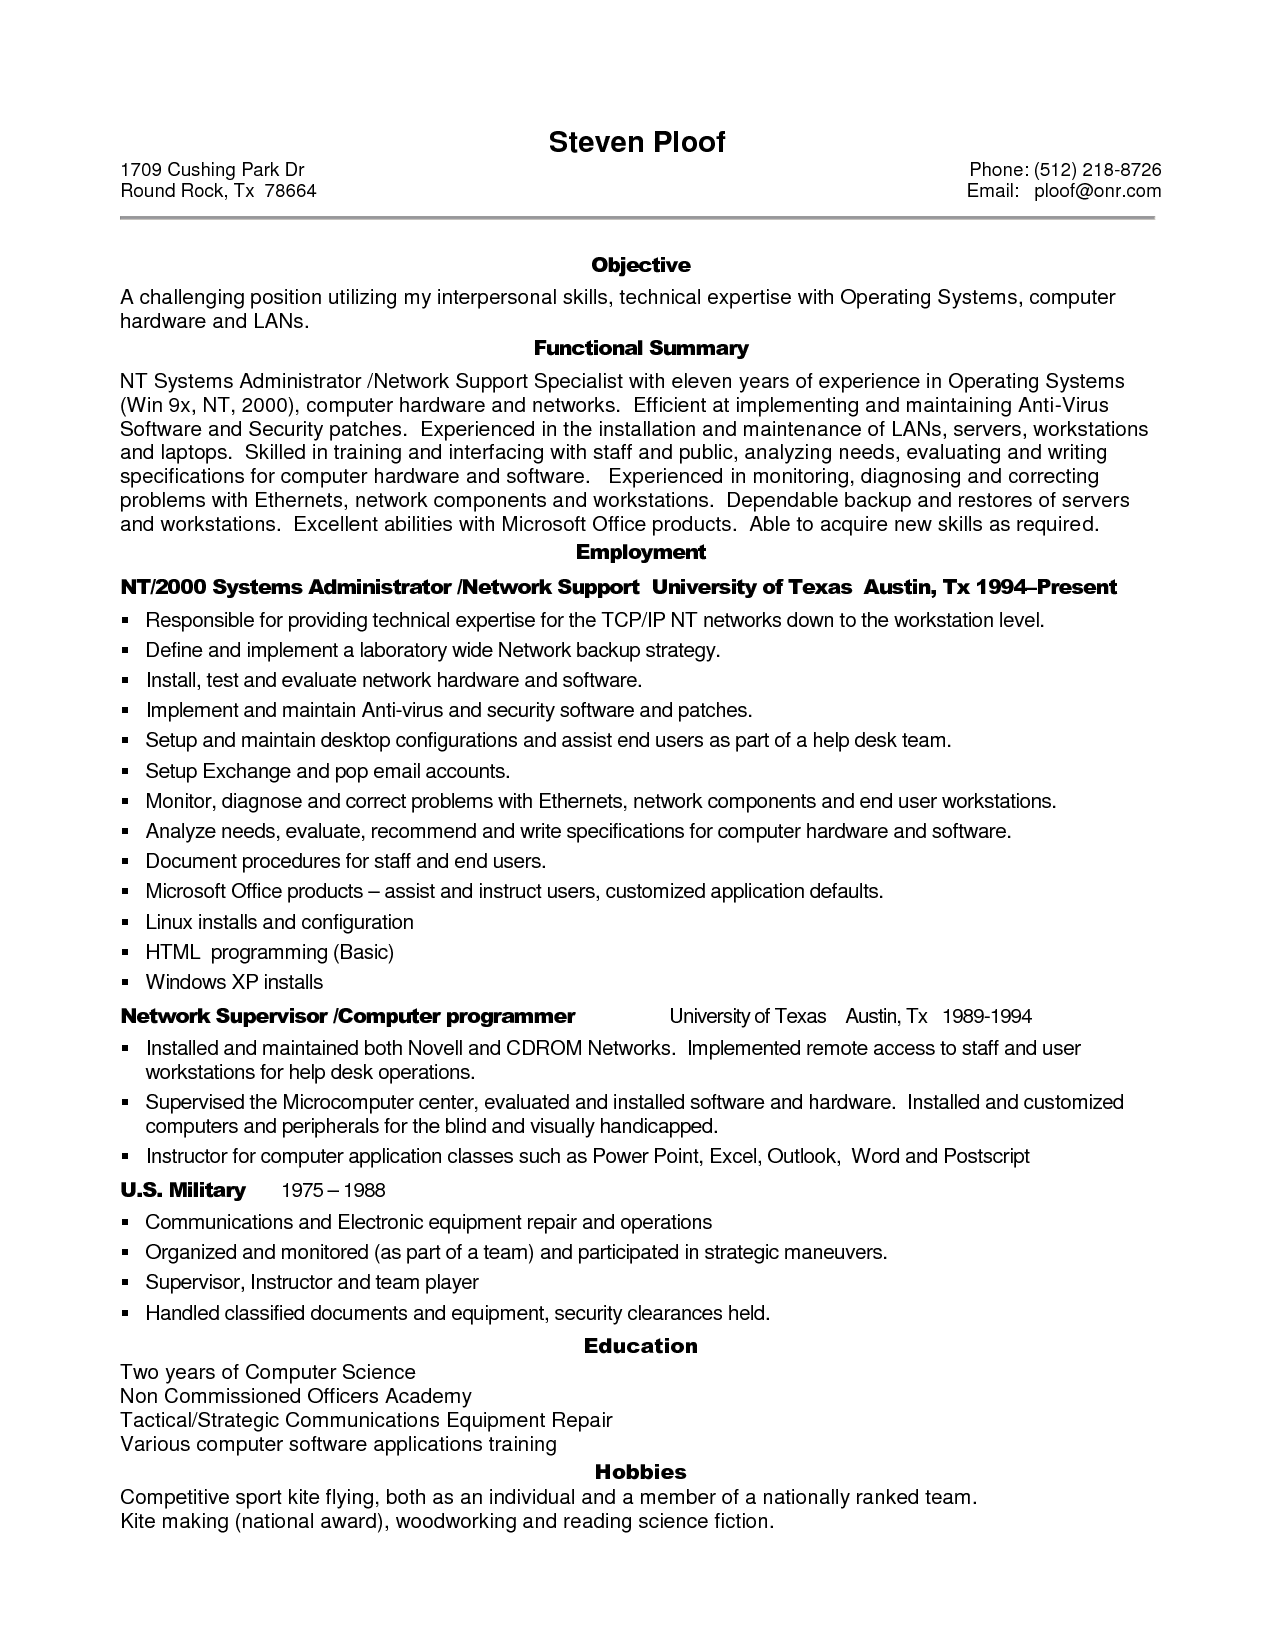 Resume Sample Resume For It Professional With Experience sample resume for experienced it professional tips for